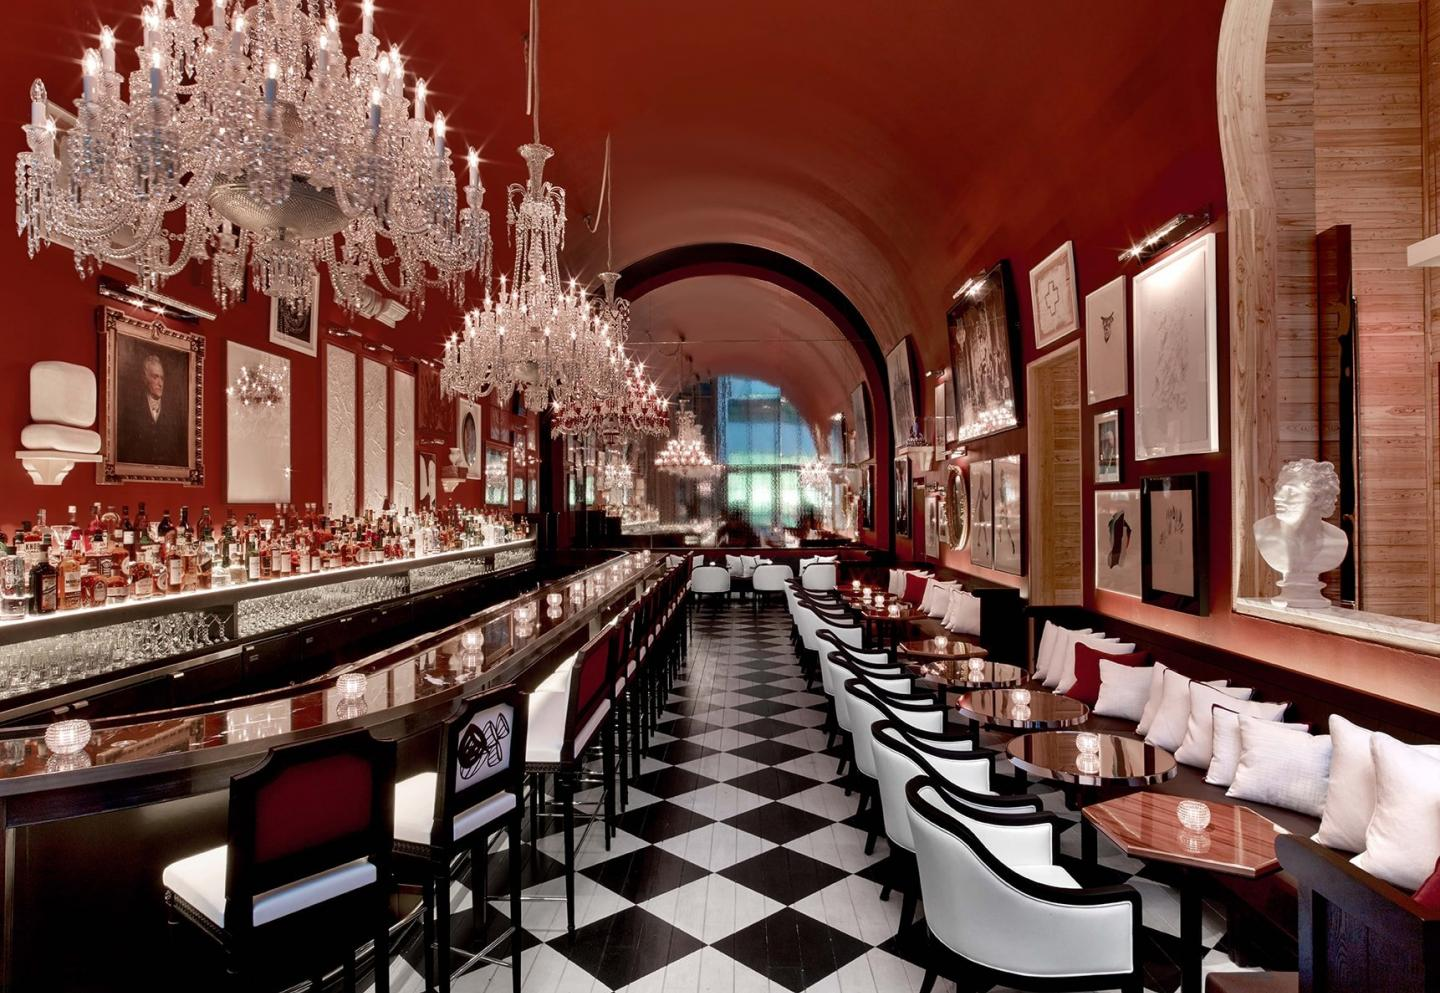 baccarat_hotel_nyc_march_2015_124-min.jpg